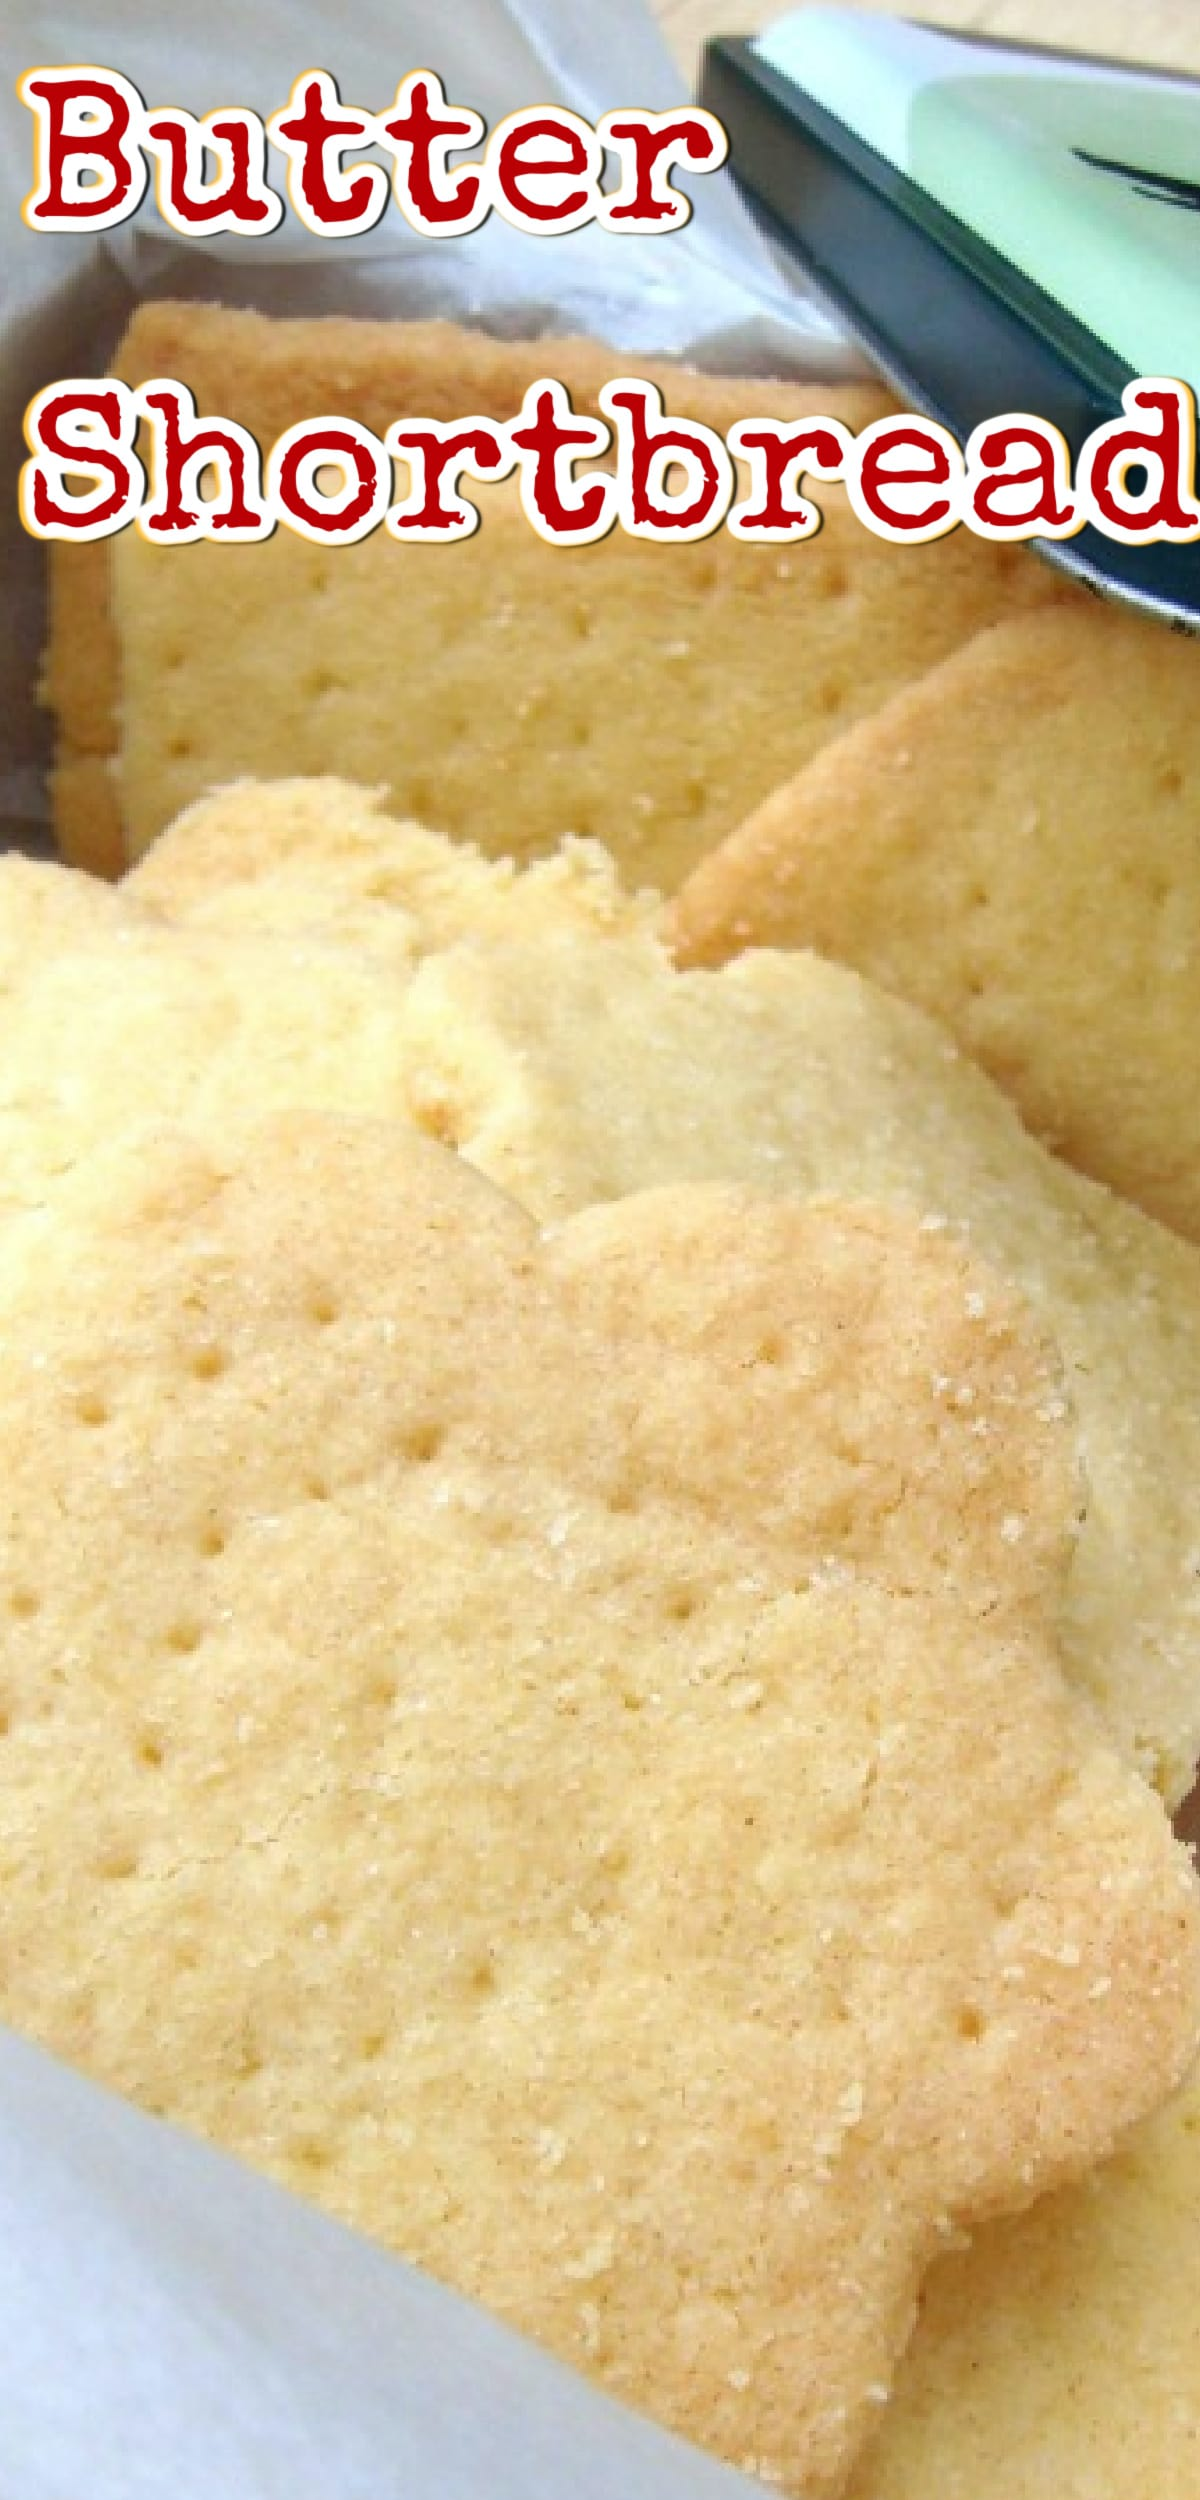 Butter Shortbread simply a delight to eat! The dough is so easy to make and uses simple ingredients. These are a traditional cookie and melt in your mouth!